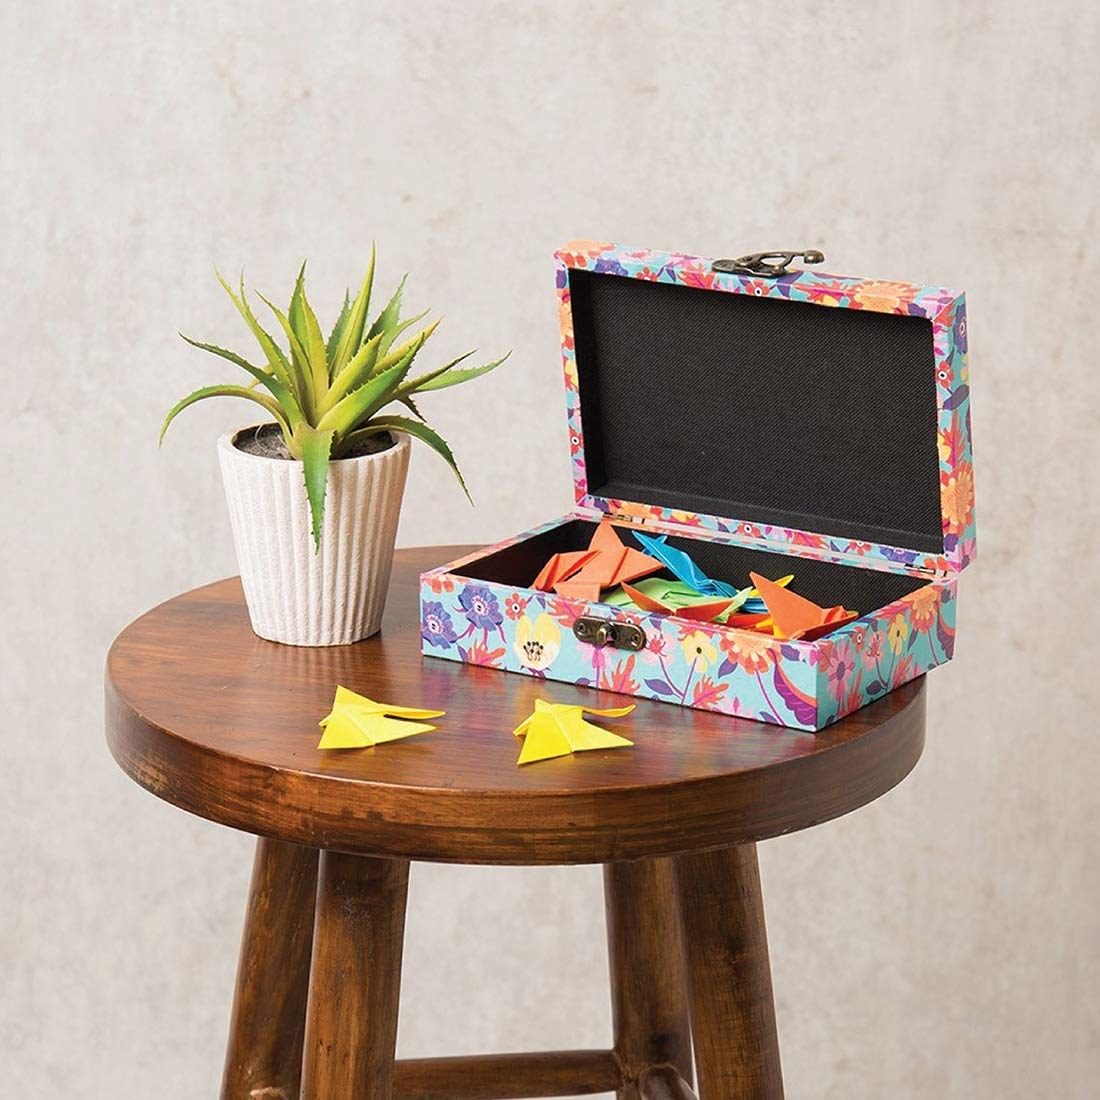 A floral box with colourful origami in it on a table next to a plant